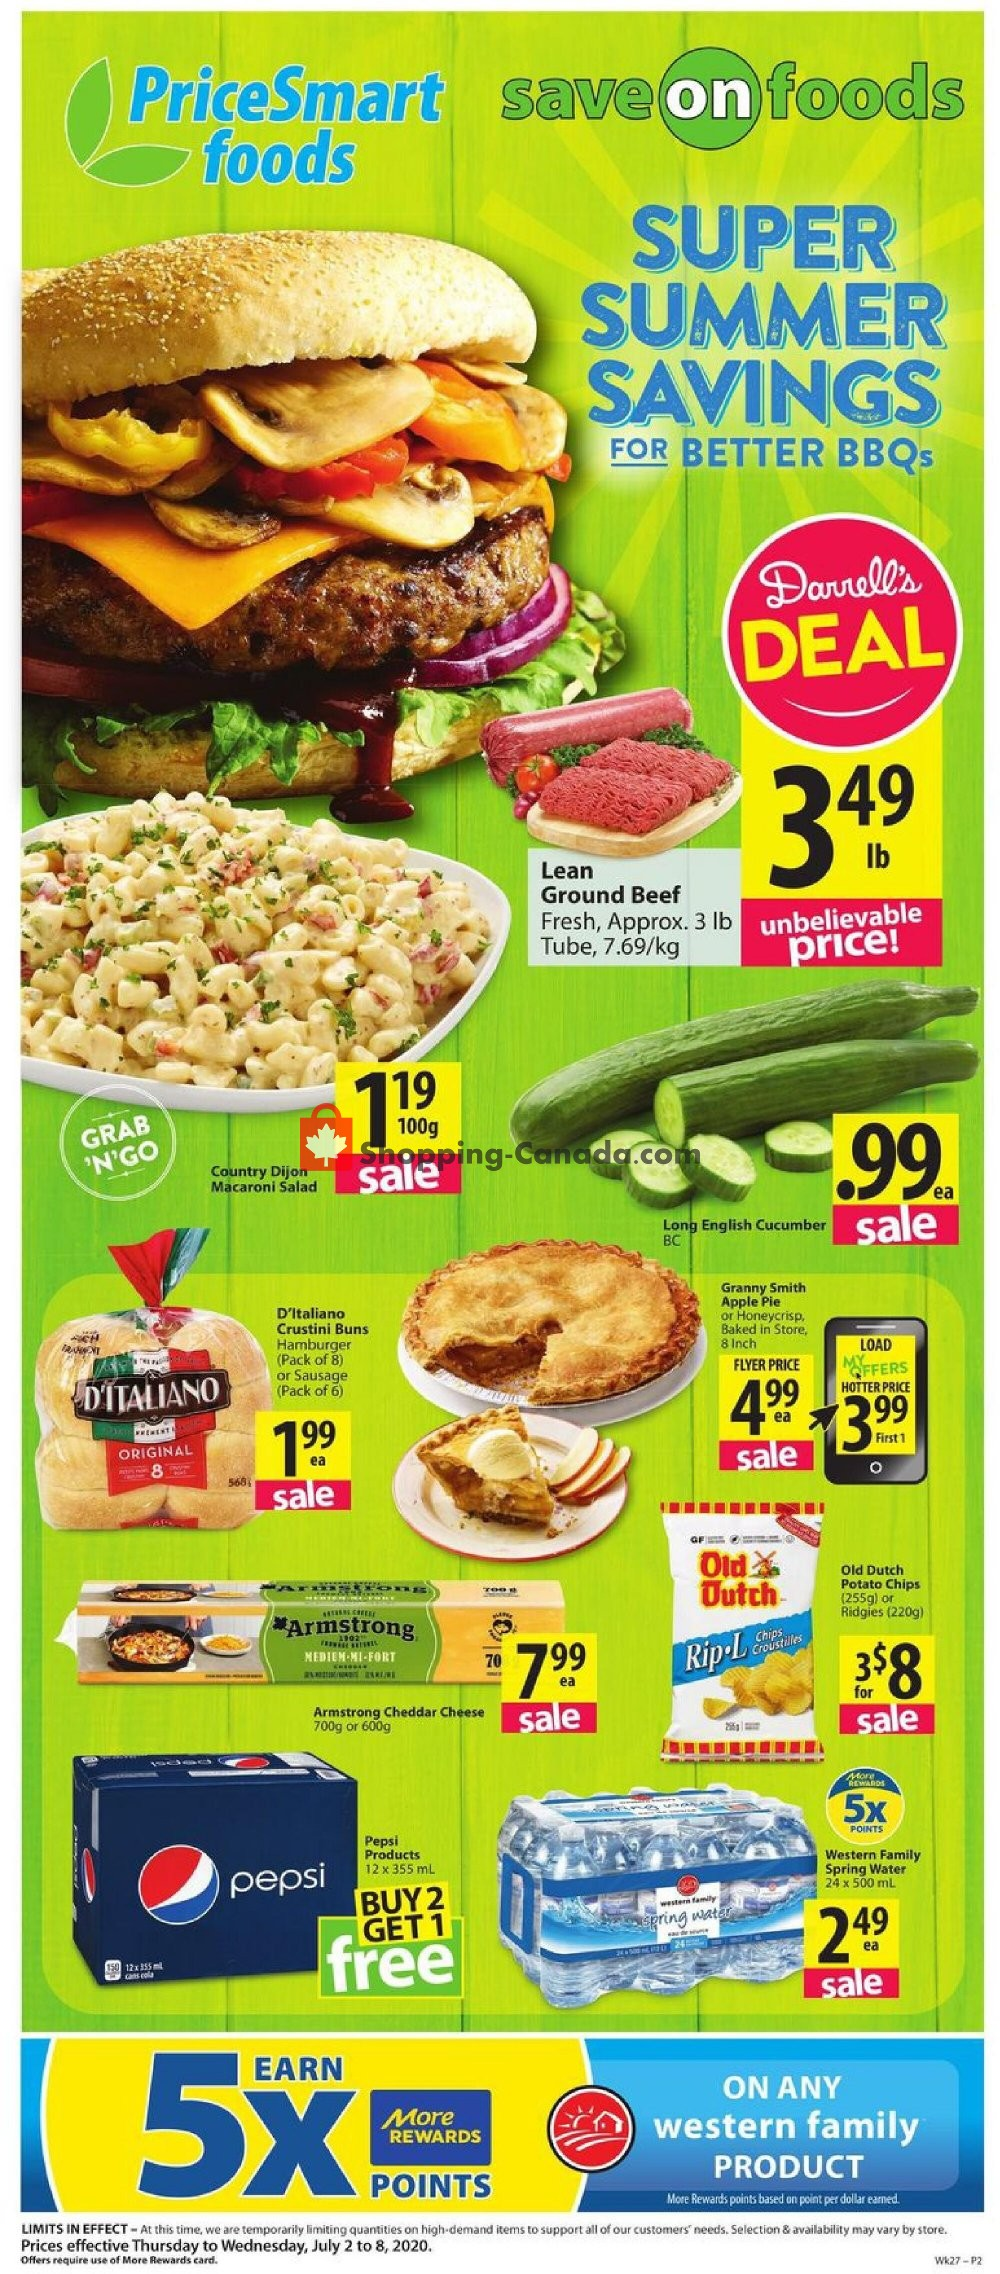 Flyer PriceSmart Foods Canada - from Thursday July 2, 2020 to Wednesday July 8, 2020